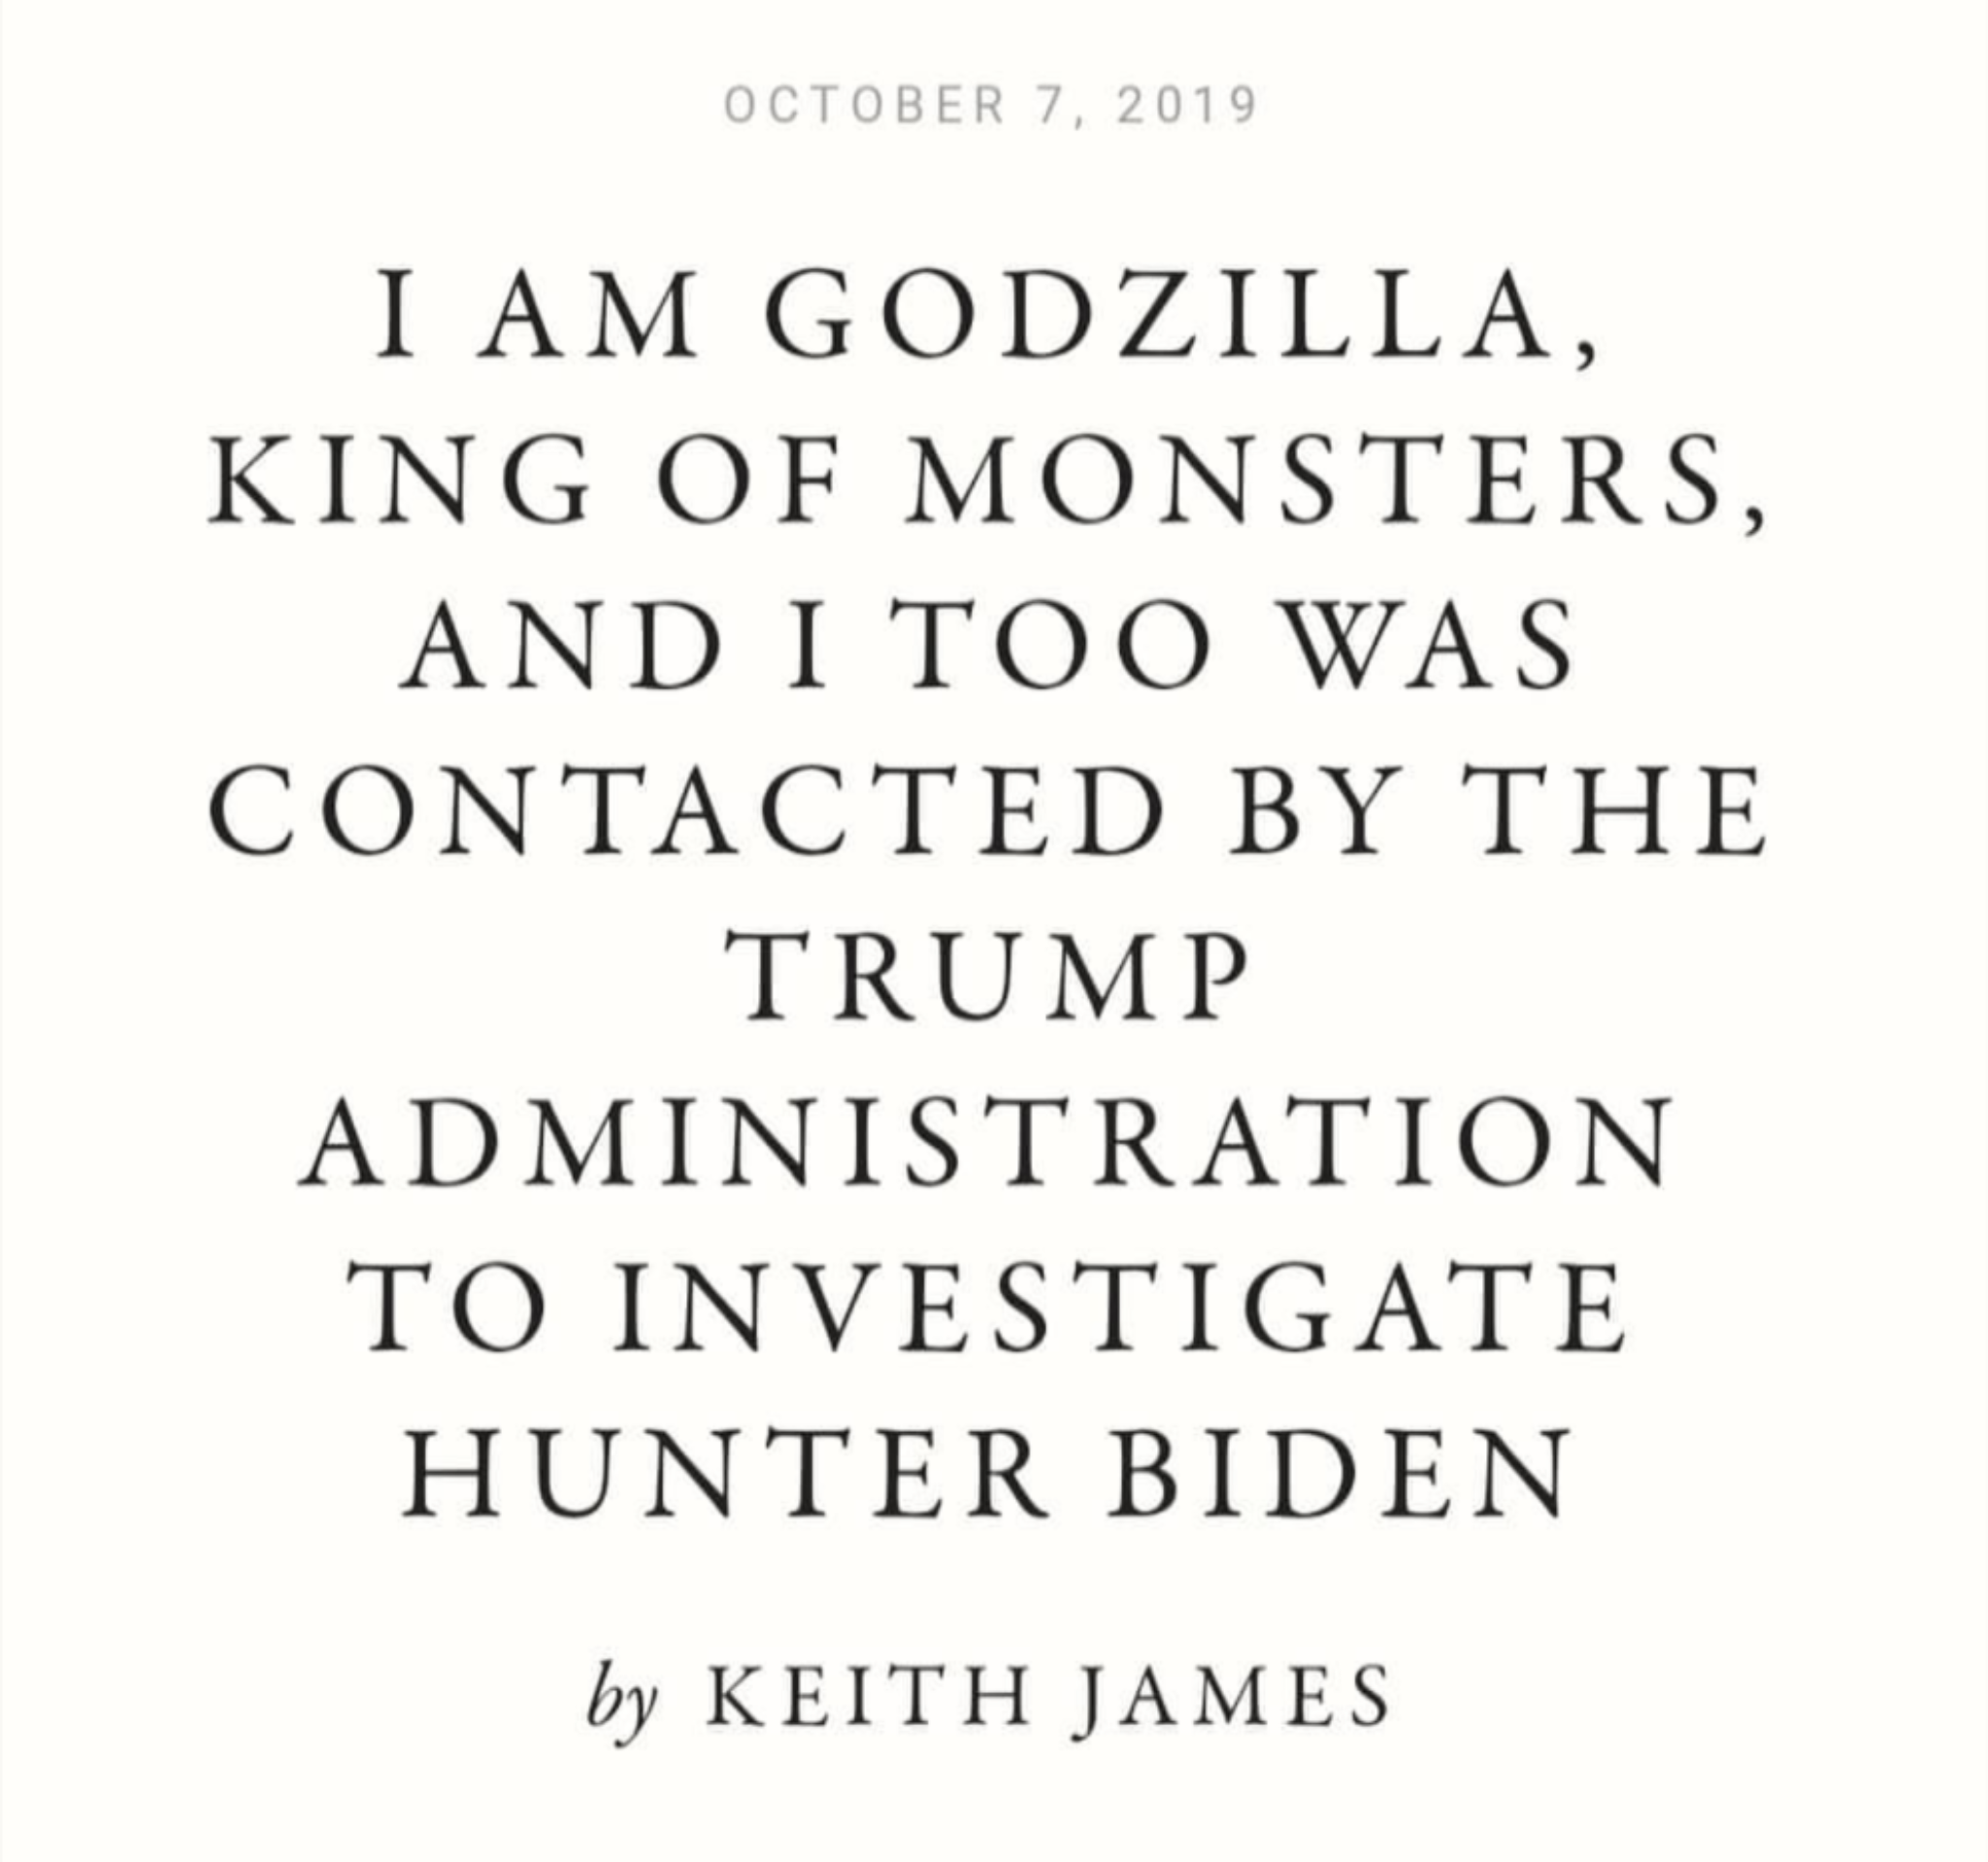 and yet no one questions Godzilla Jr's private email server